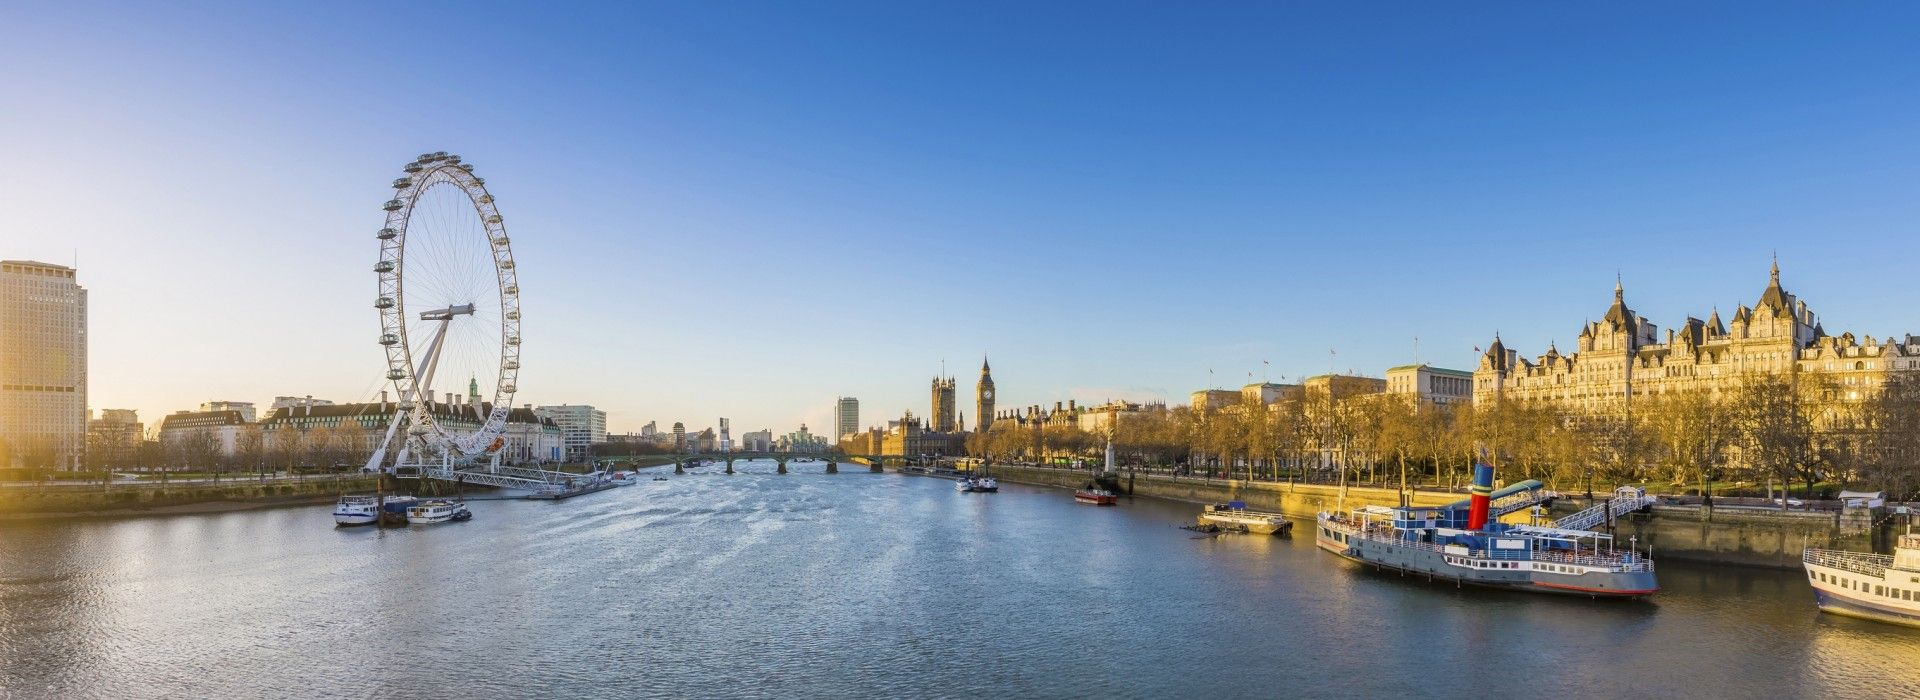 Special interests and hobbies Tours in London